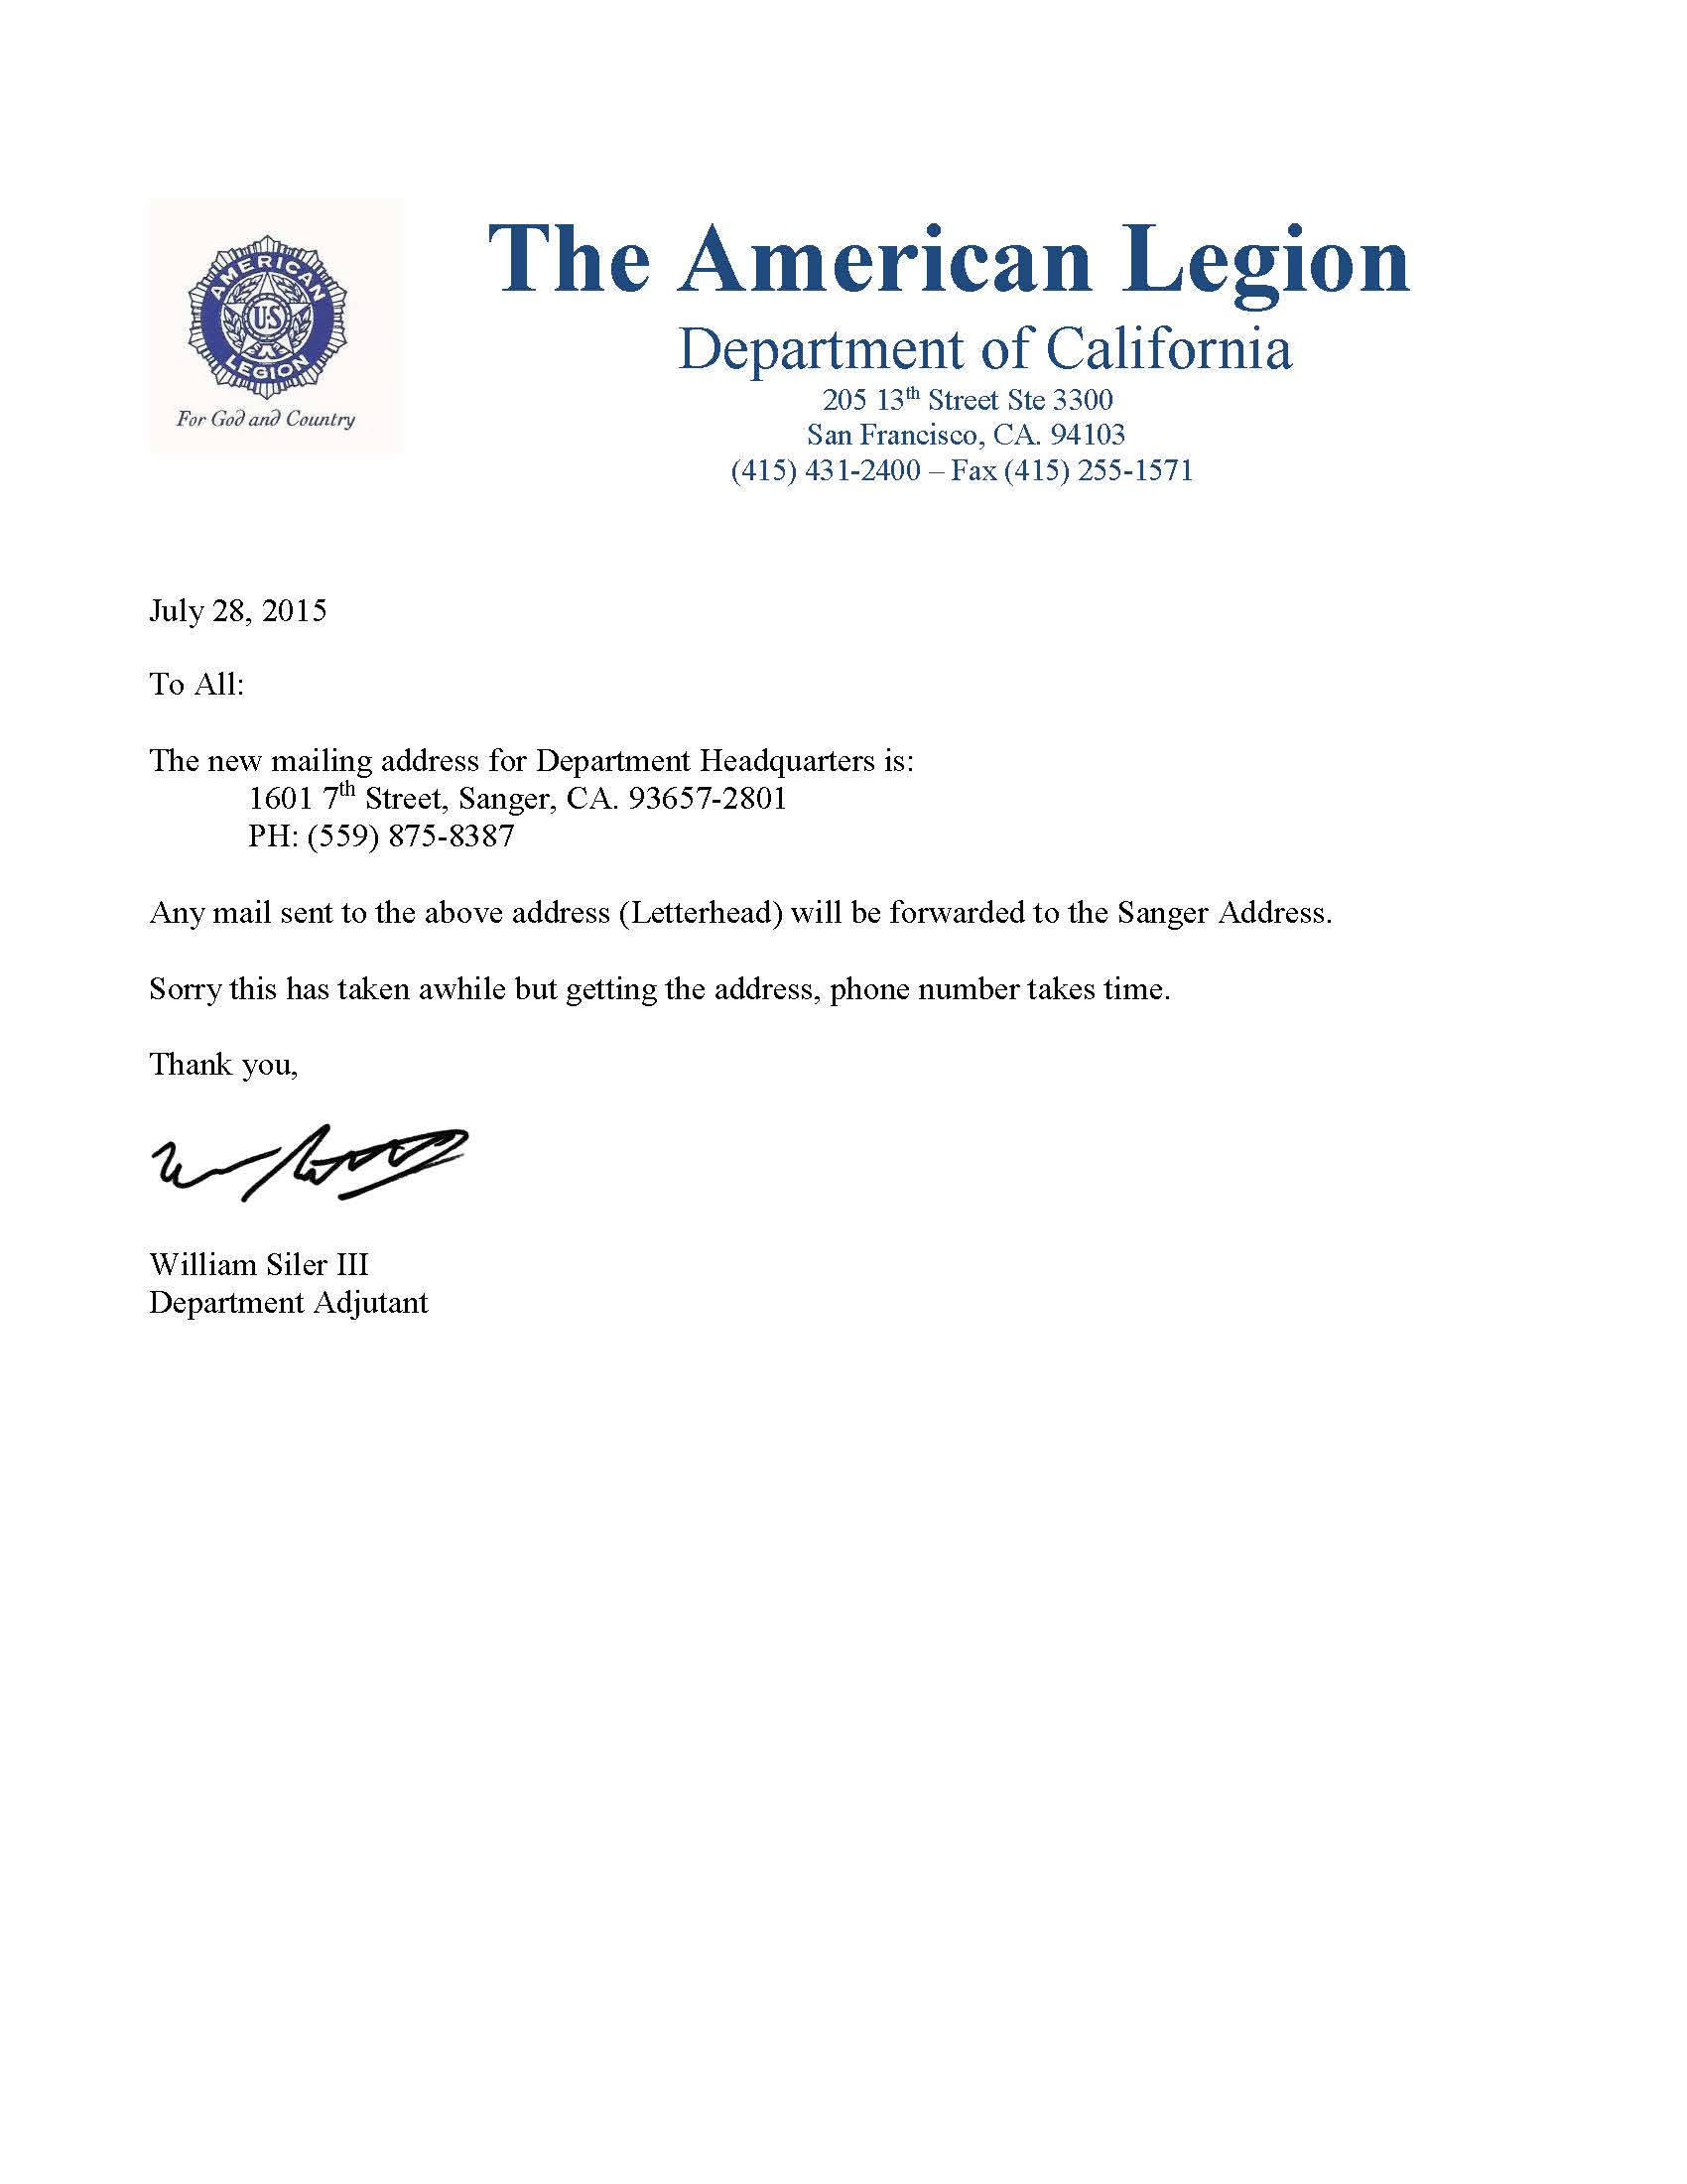 New department mailing address terrific twelfth for American legion letterhead template